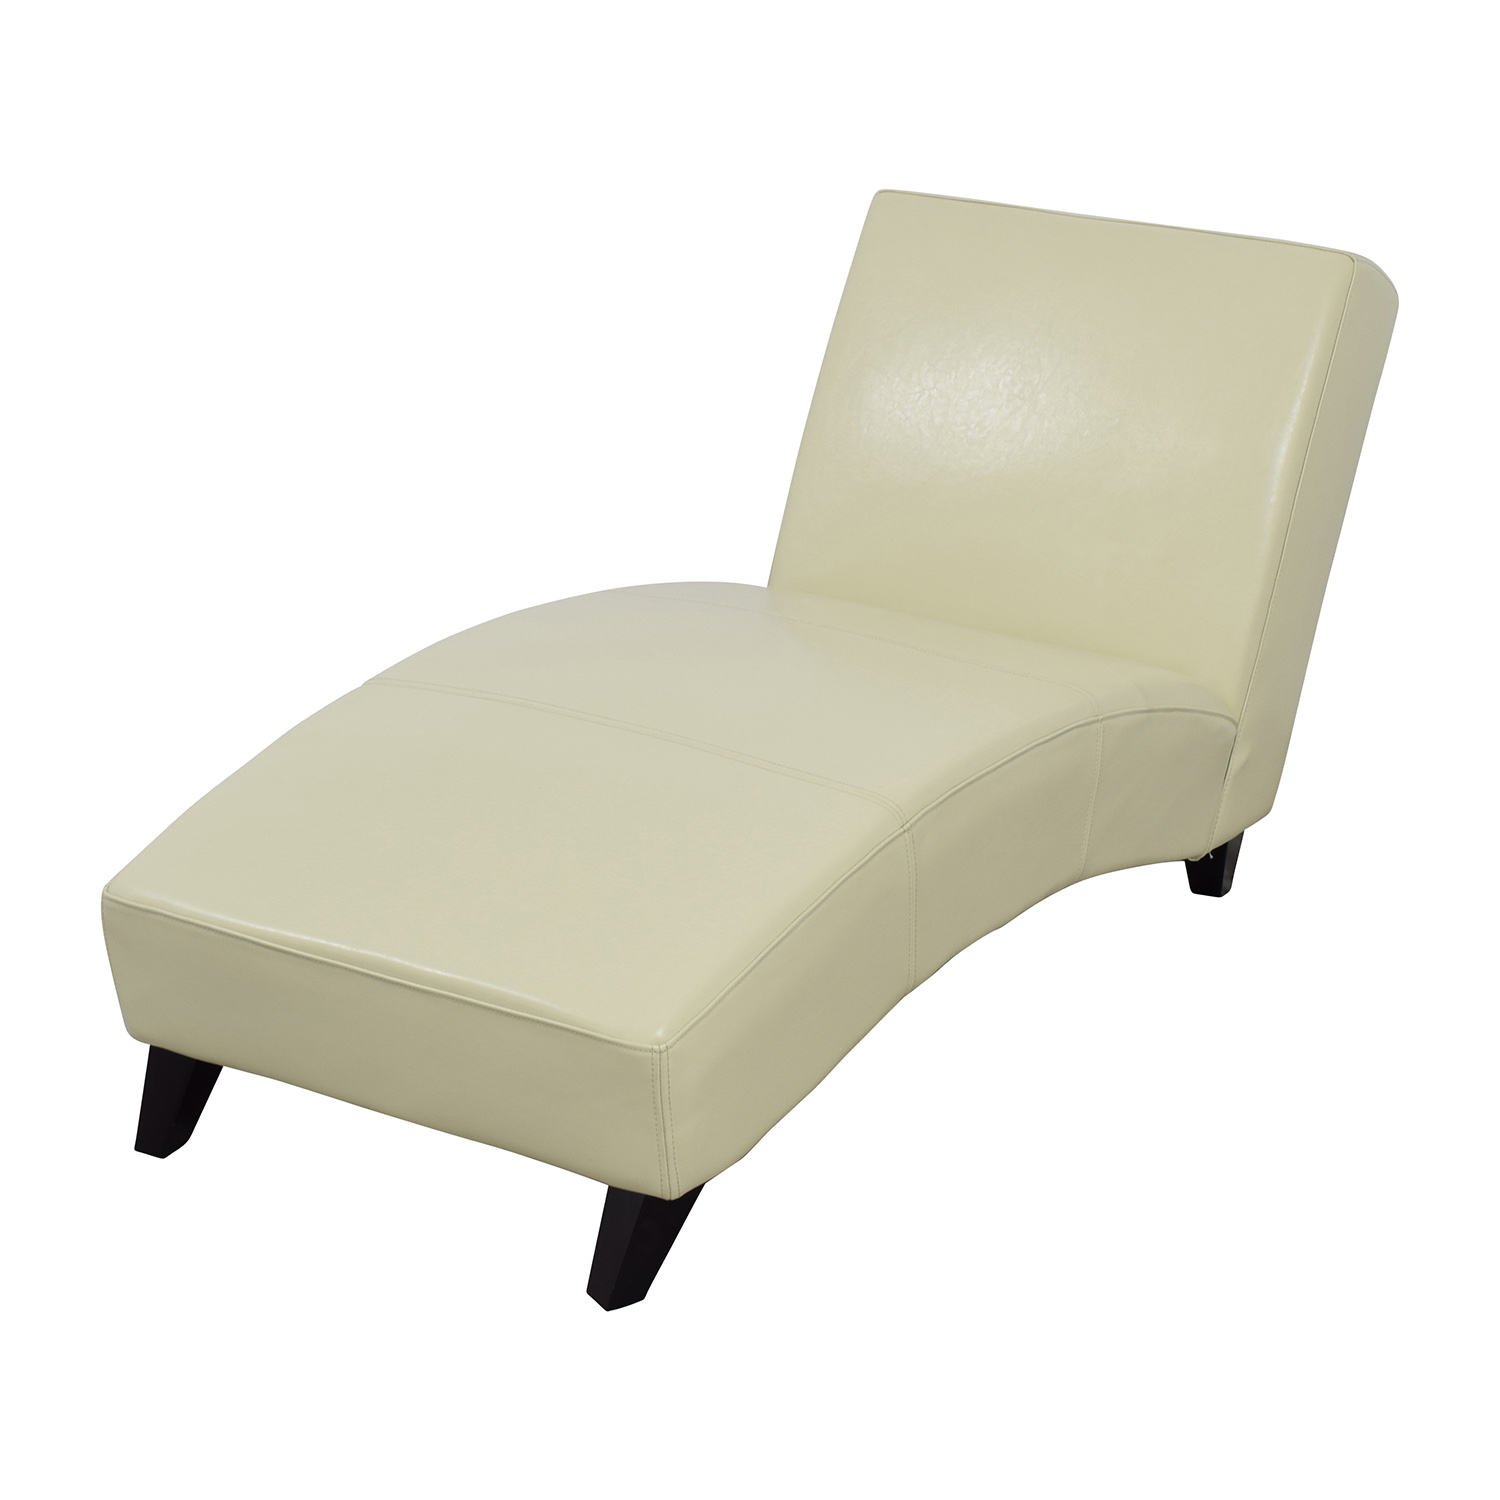 Wayfair White Leather Chaise / Chaises